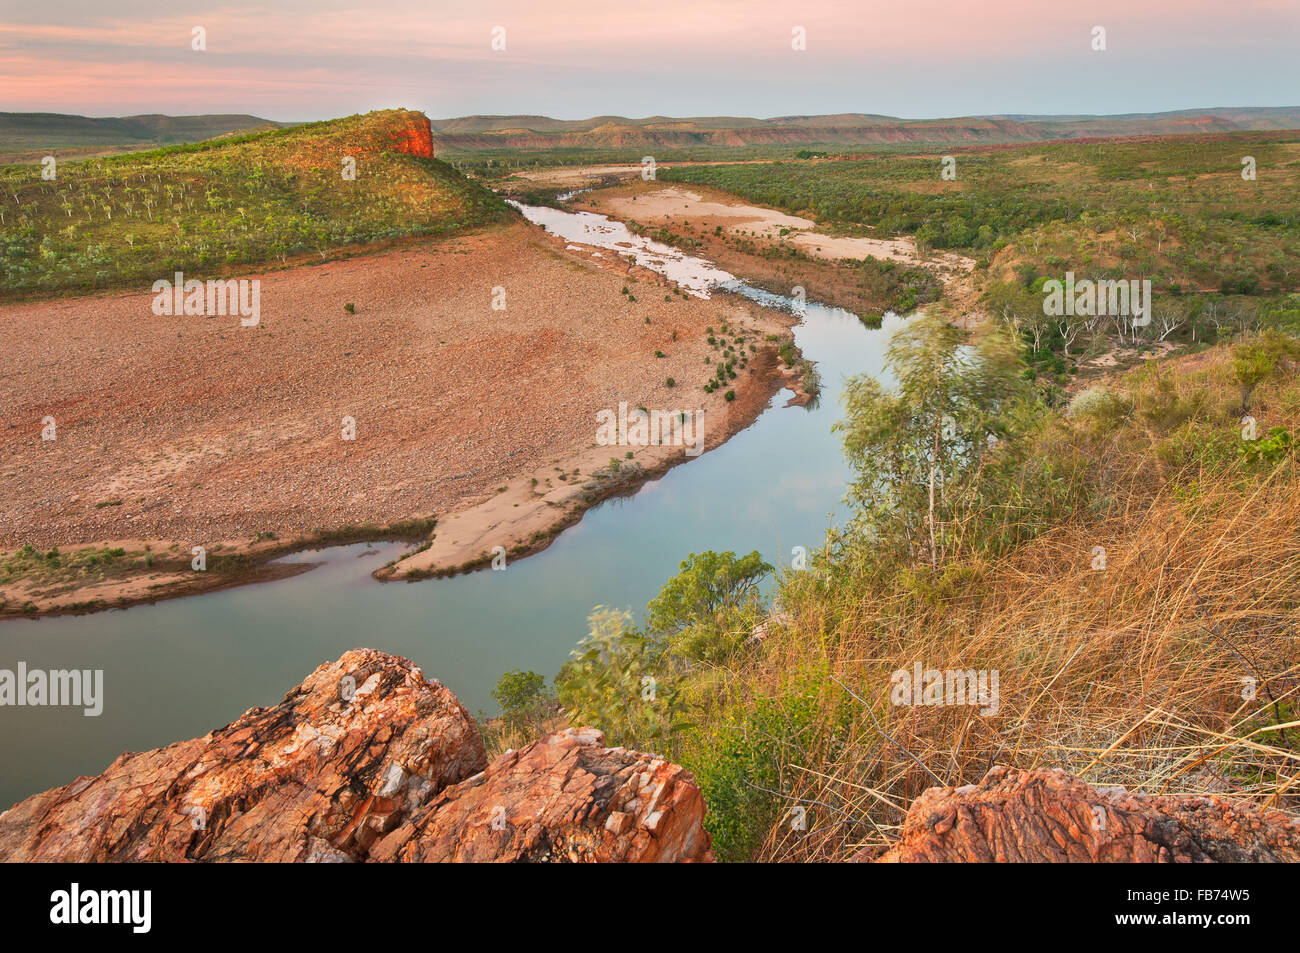 Fascinating landscape at Pentecost River in the Kimberley. - Stock Image